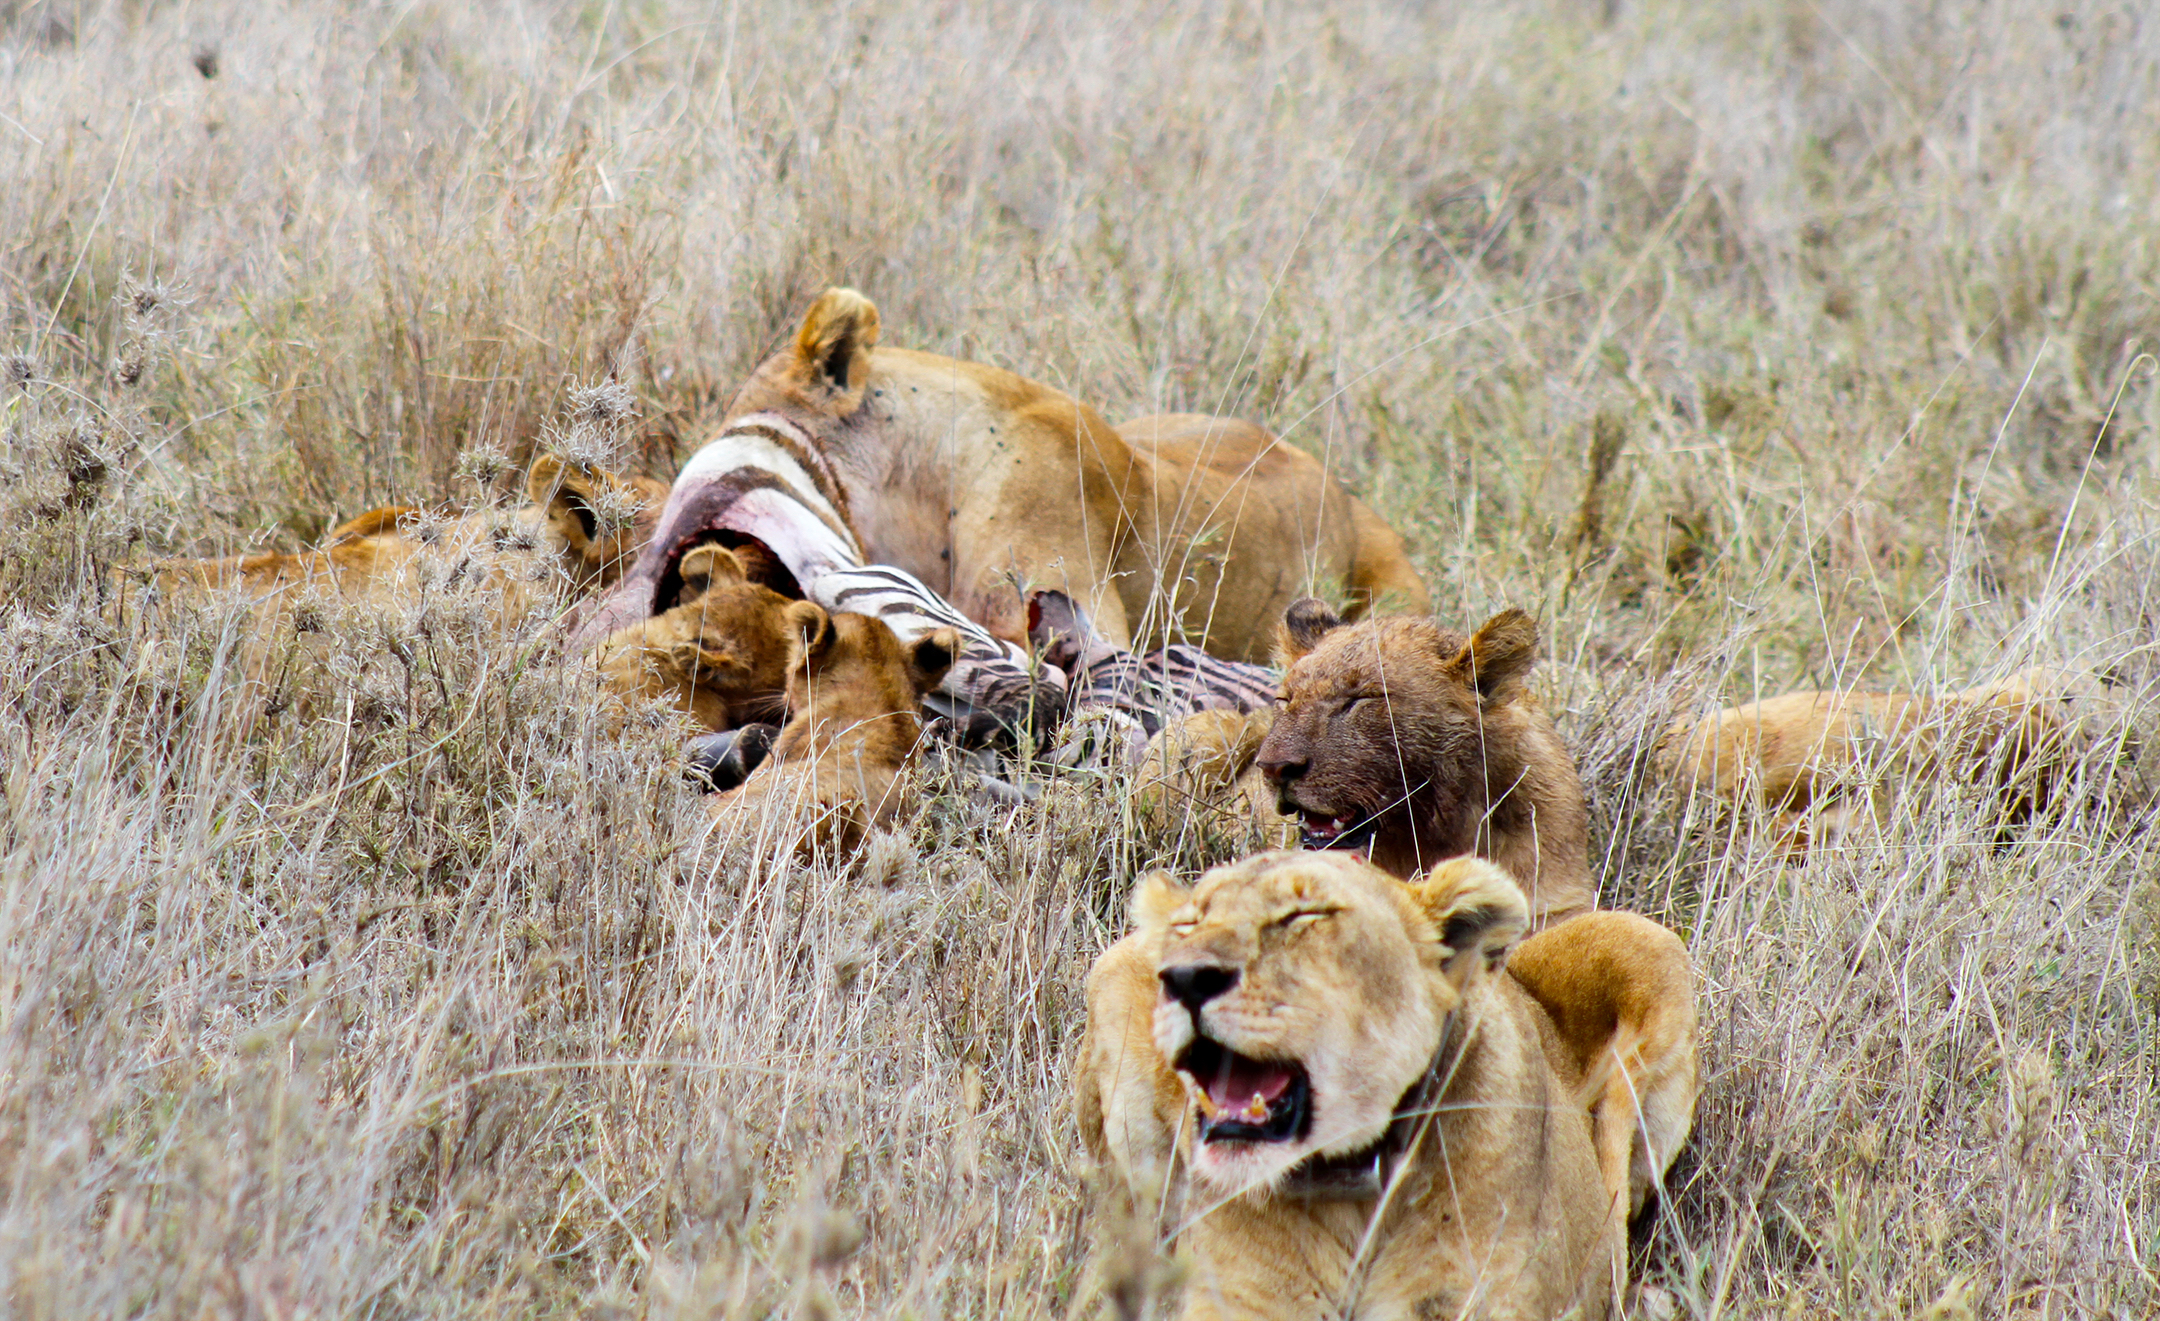 Africa_Photographic_Serengeti__26.jpg